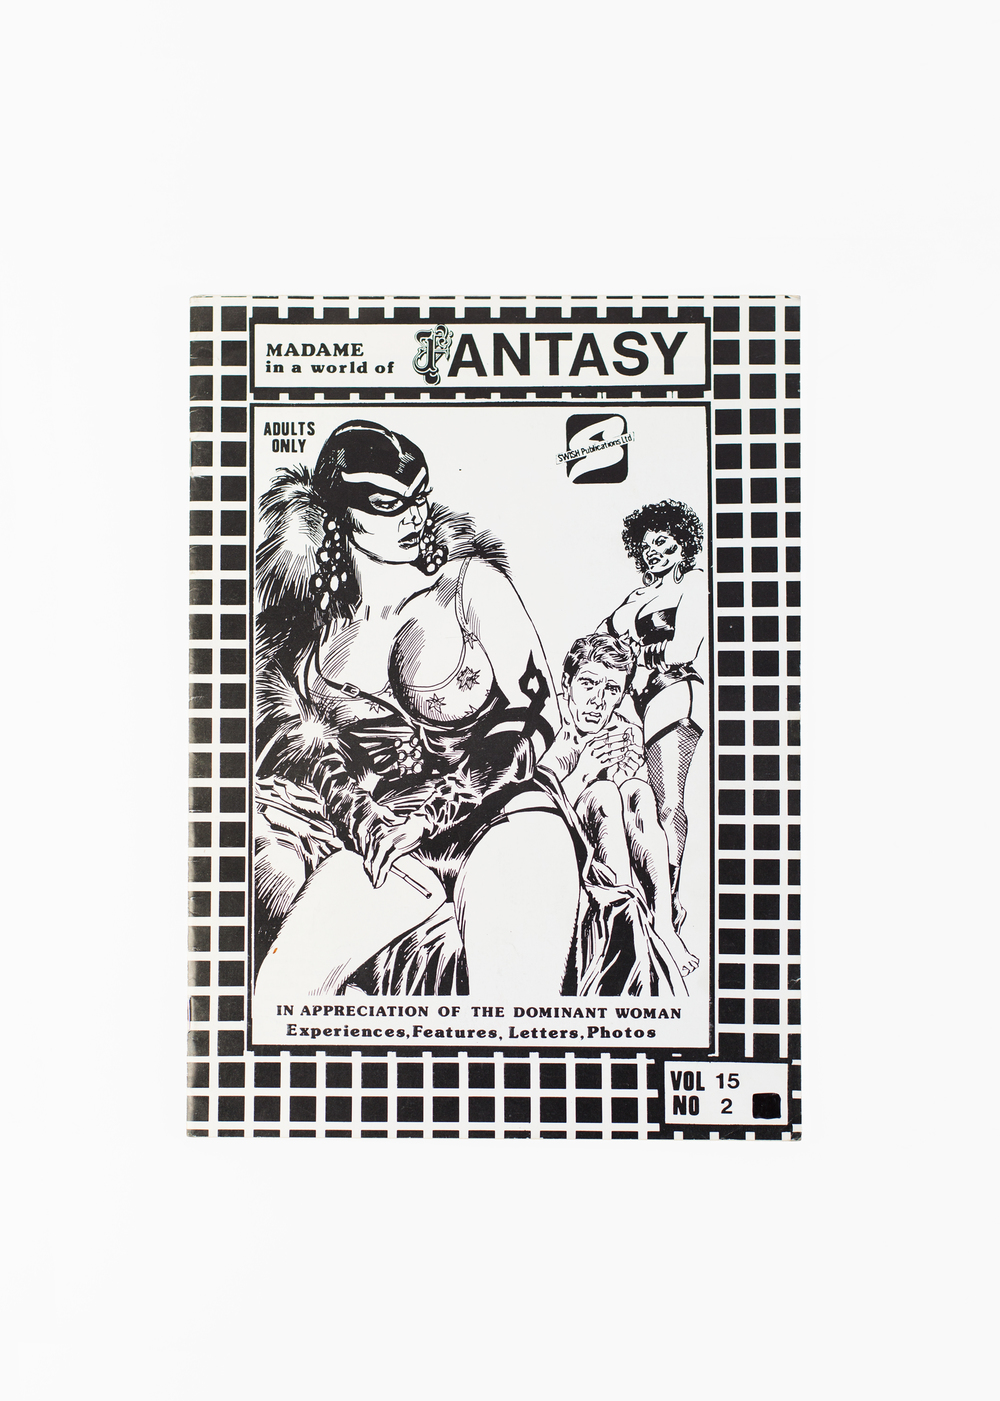 "Madame in a World of Fantasy</br>66 pages 21 x 30 cm</br>€25 <a href=""https://www.paypal.com/cgi-bin/webscr?cmd=_s-xclick&hosted_button_id=574ZR8ZH86PKE"">Add to Cart</a>"